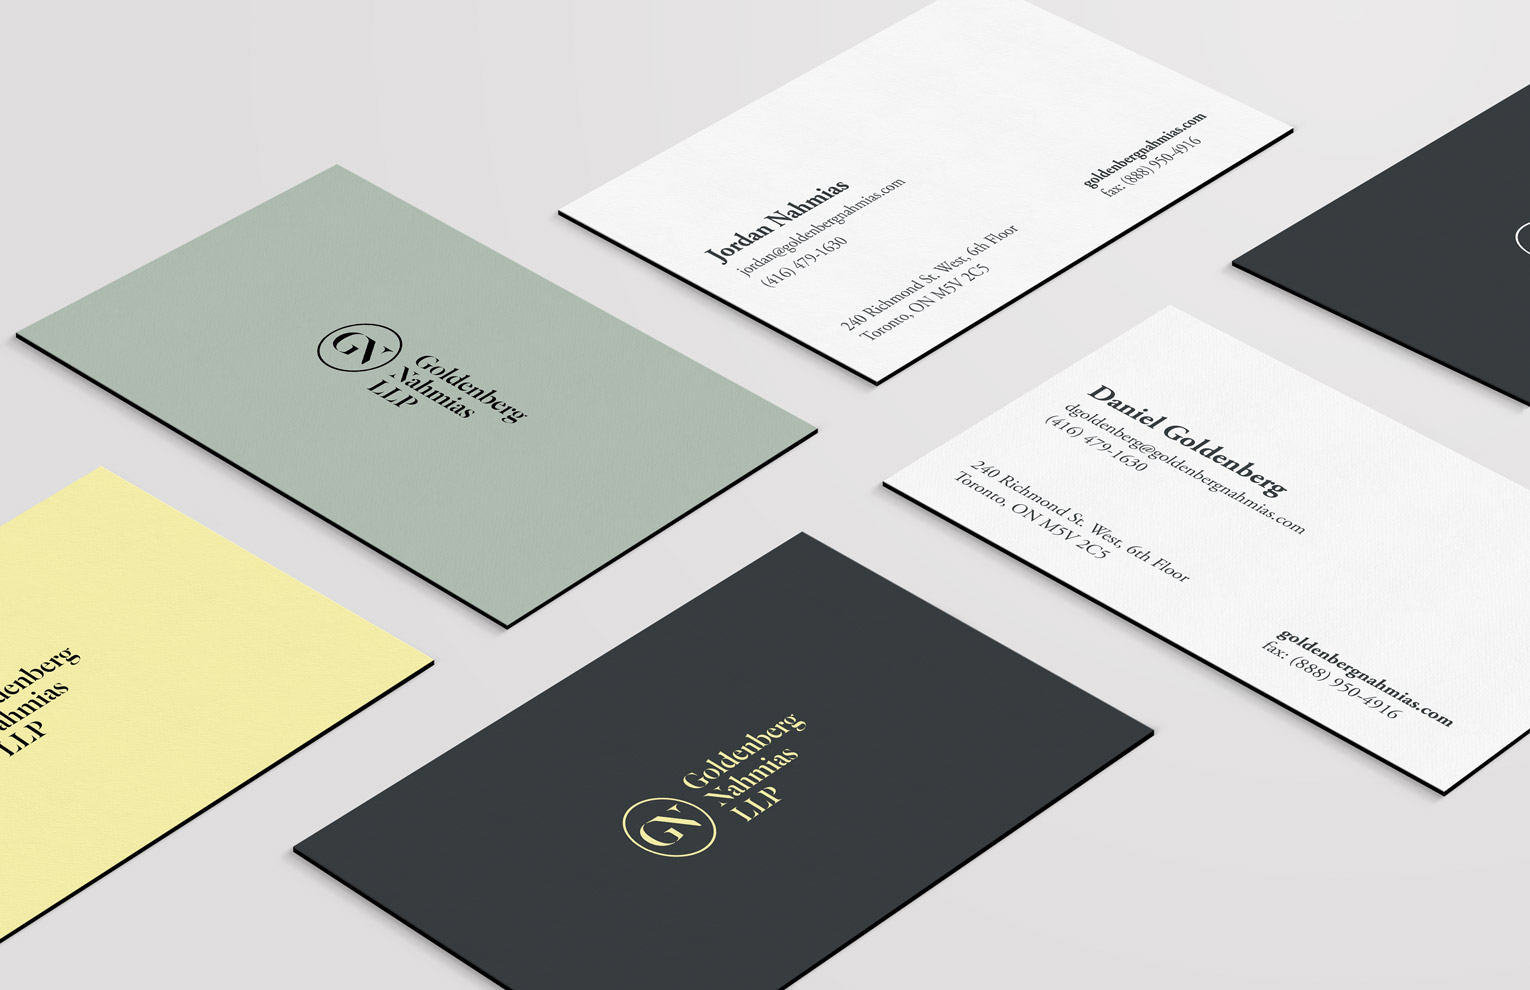 Outskirts creative toronto canada outskirts provided full branding including a logo colour palette business cards letterhead envelope note pad and website reheart Gallery